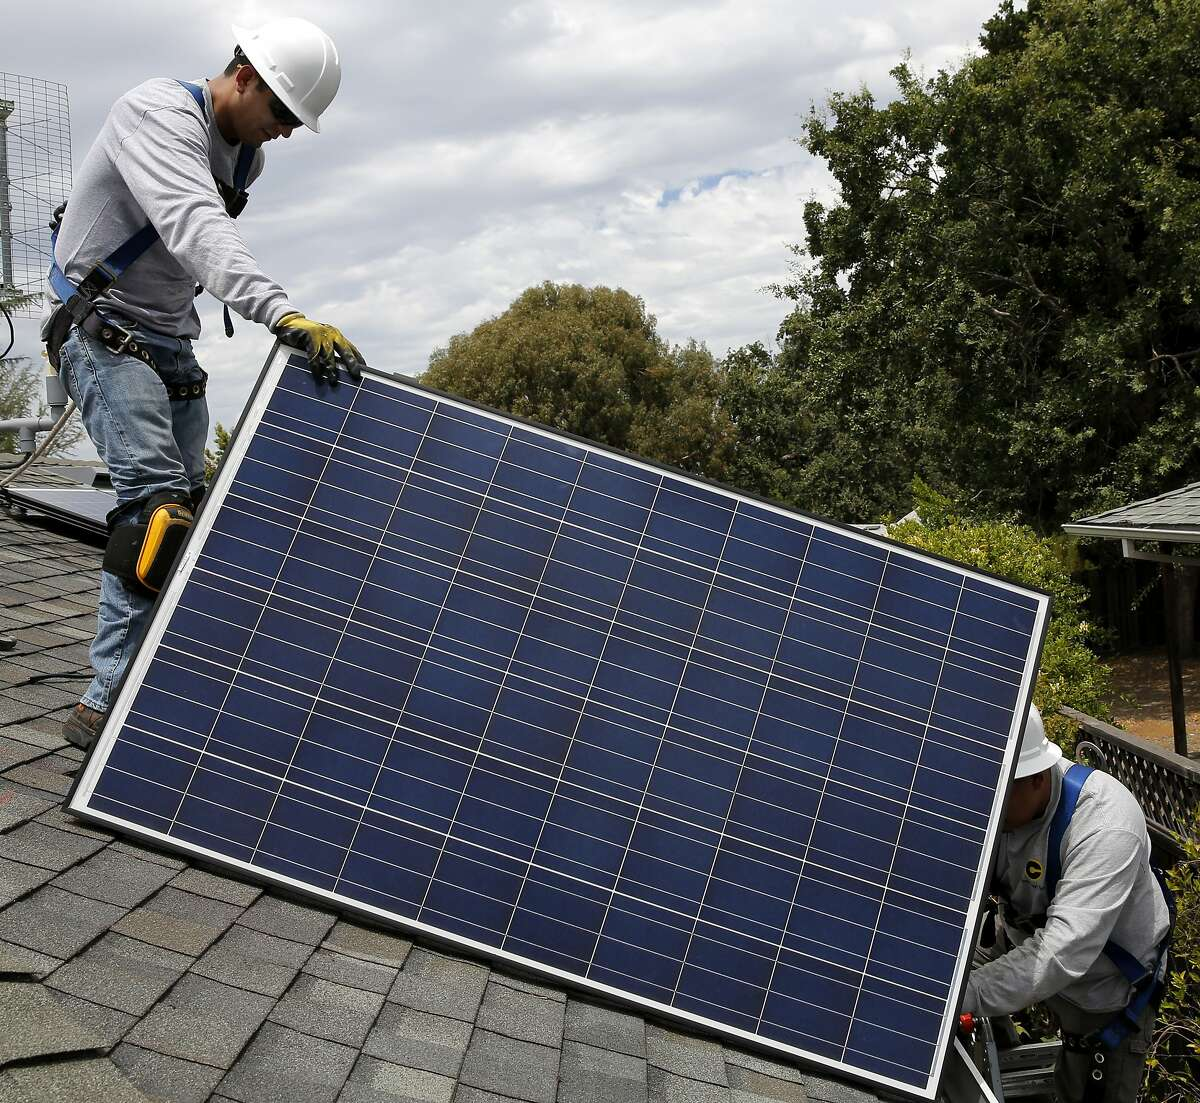 Jonathan Munoz holds a solar panel on the roof of a house in Los Gatos, California, on Tuesday, Aug. 4, 2015.